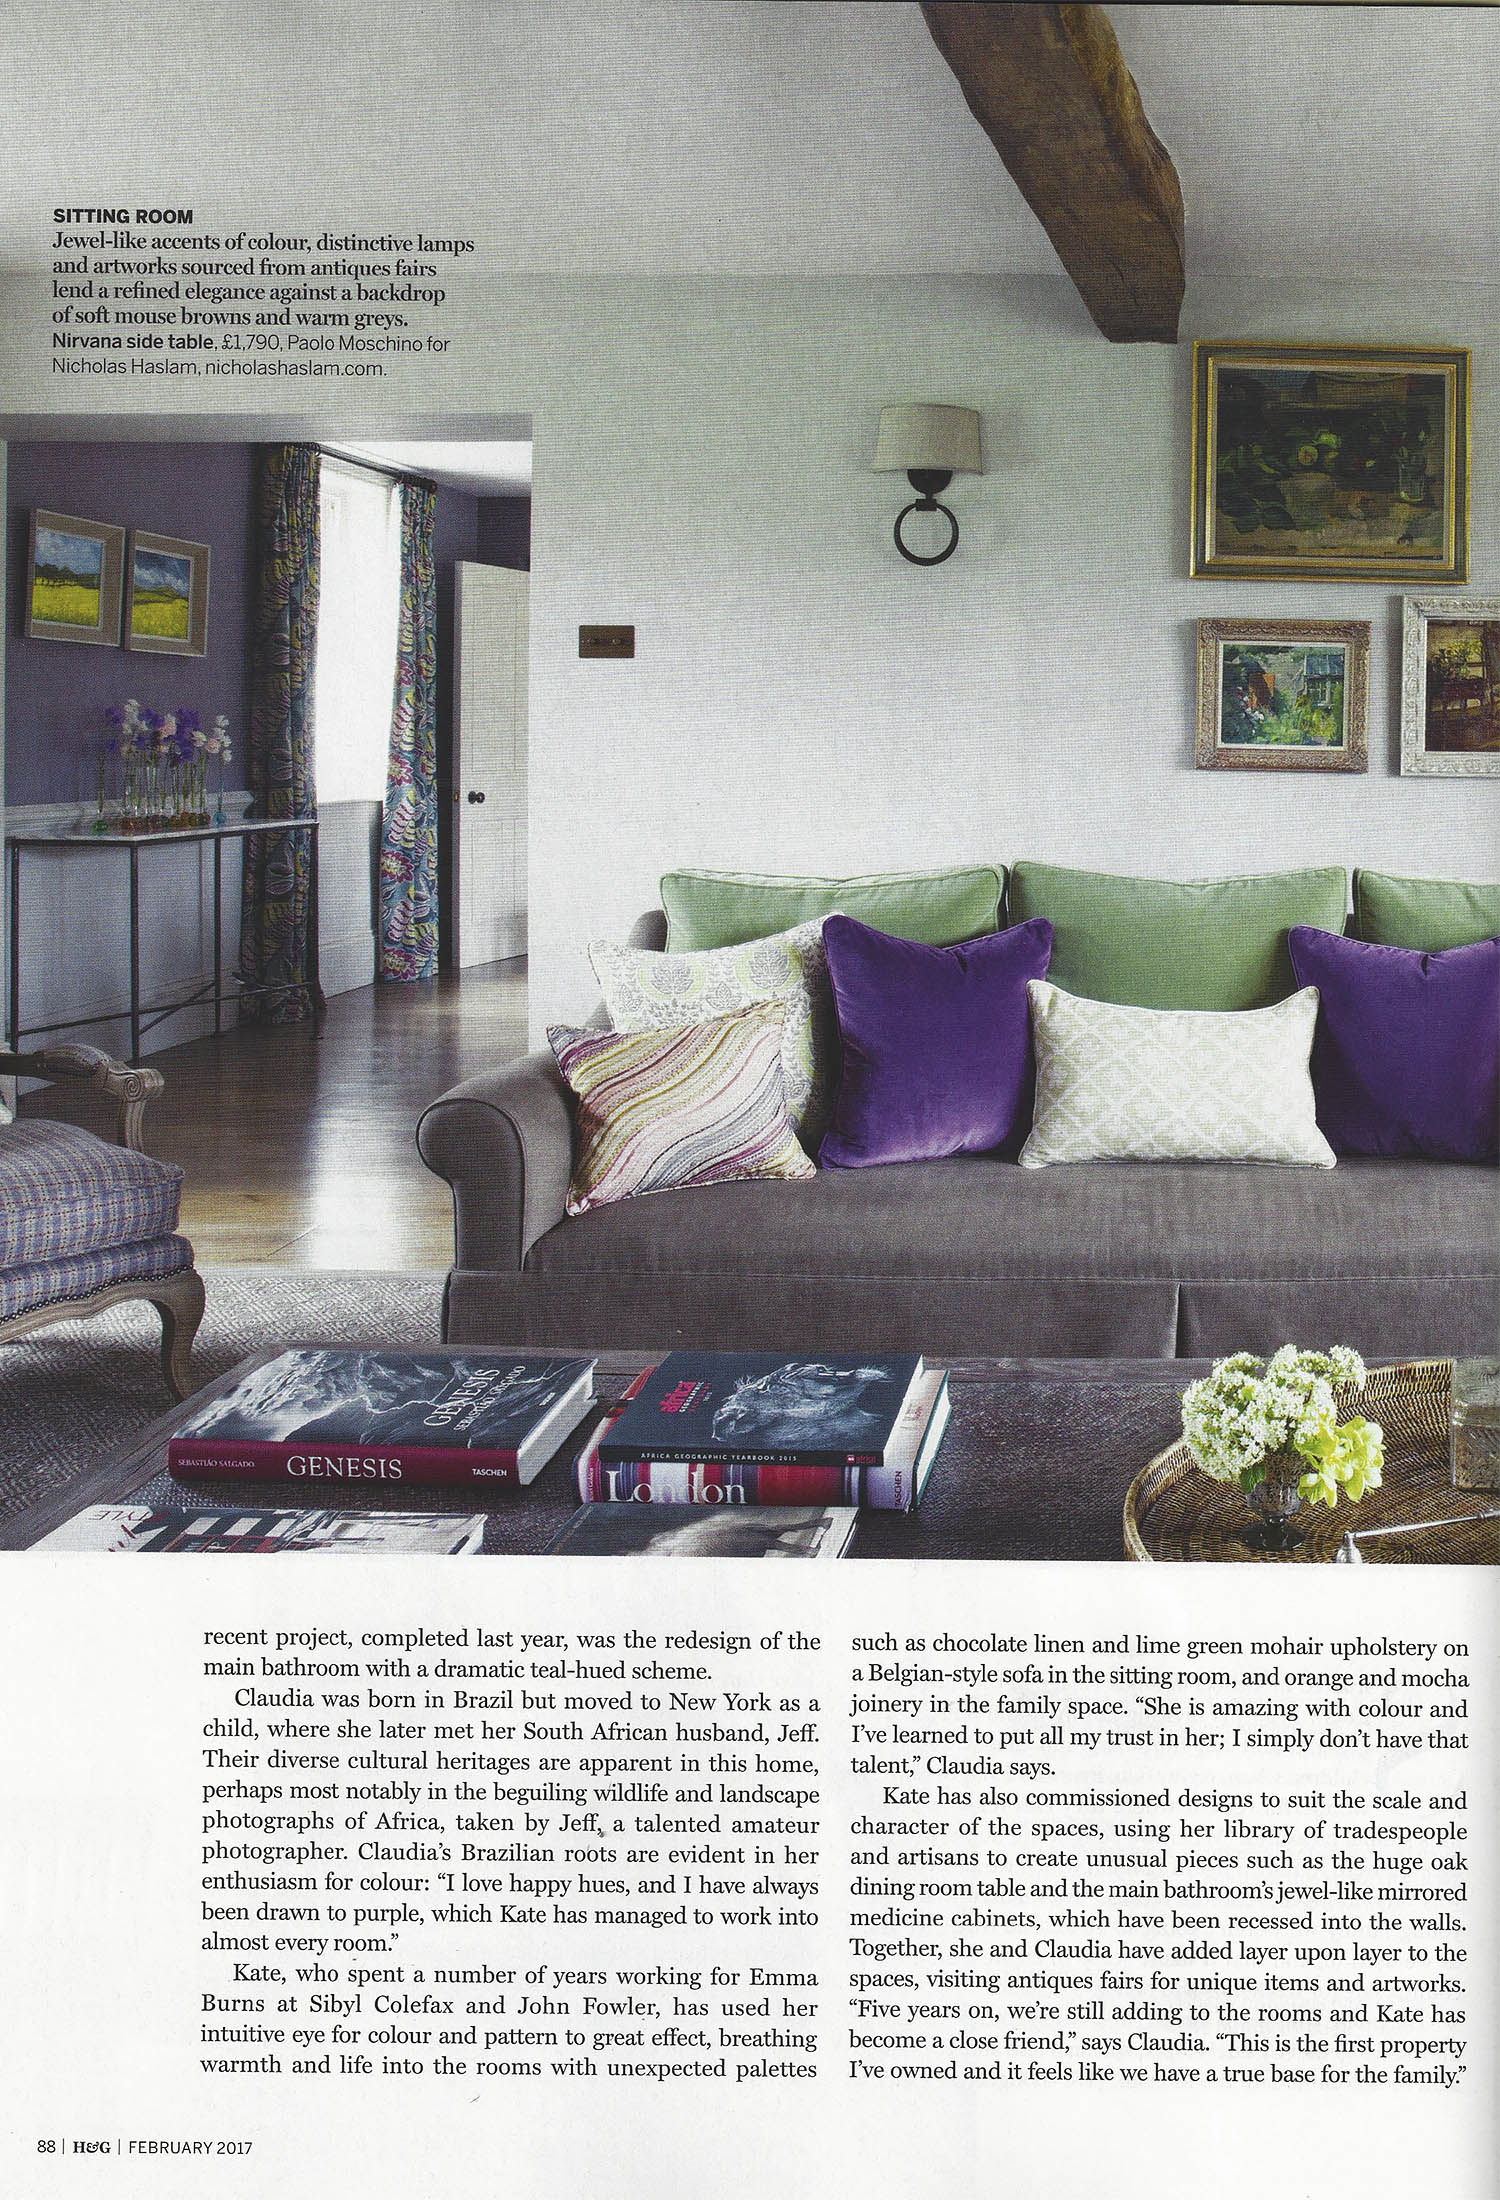 House & Gardens - Feb 2017 - 'Inspired by Block Prints' - Page 88 - 89 - Cushion - Pomeroy-1.jpg